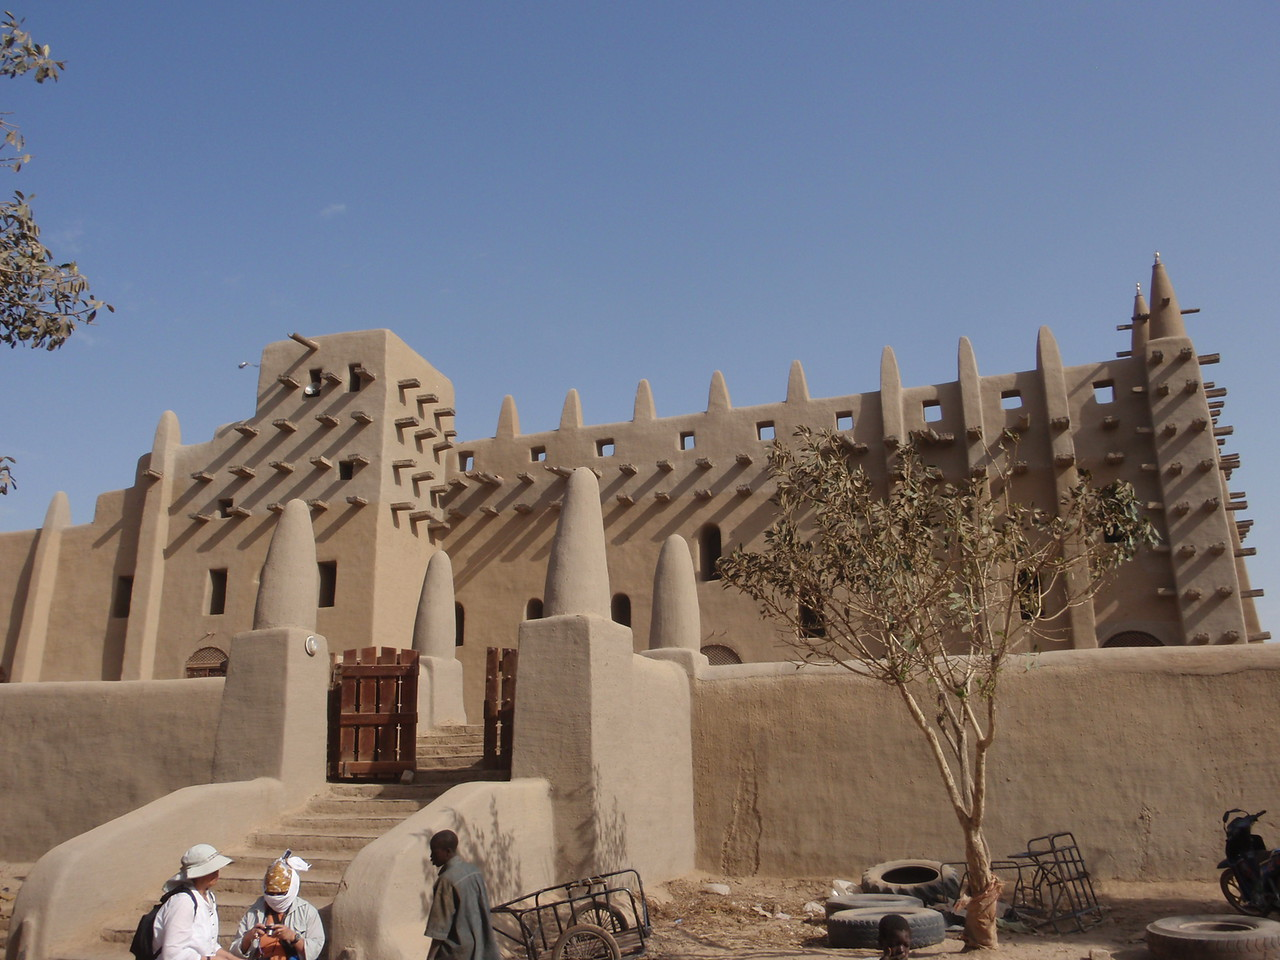 149_Great Mosque  Built 1280 after King Konboro Converted to Islam